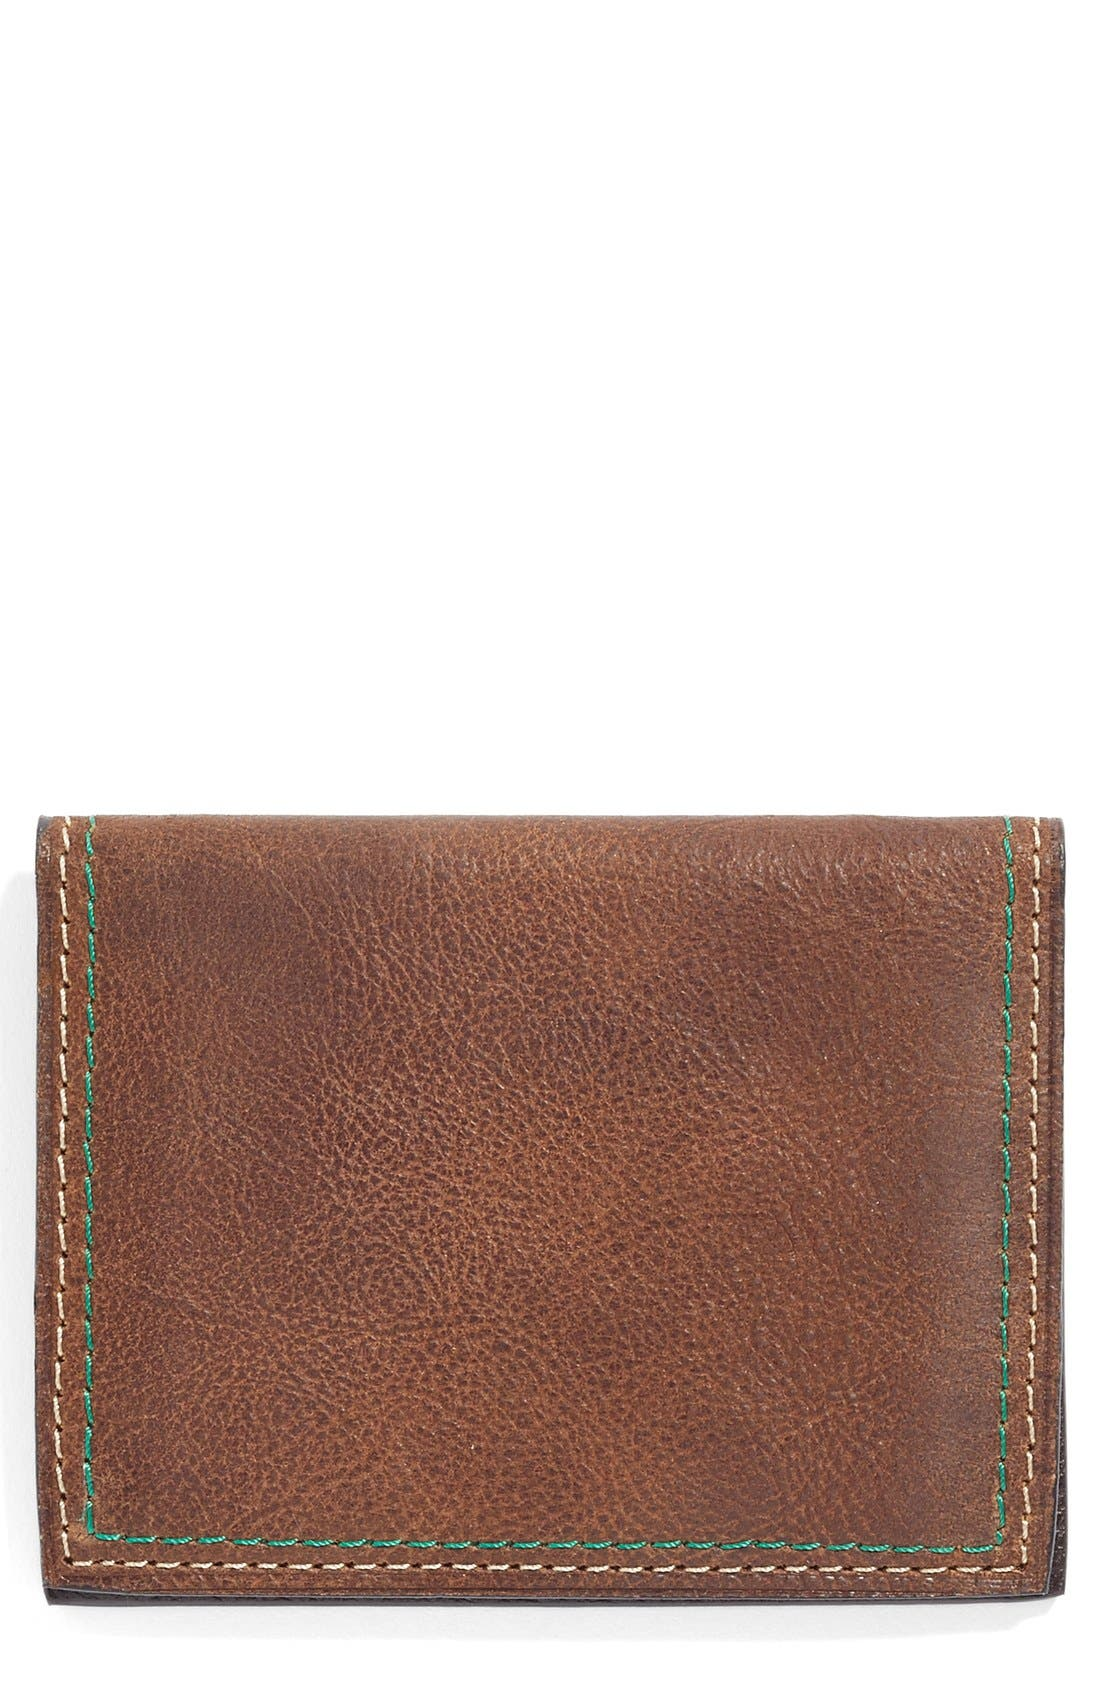 Water Buffalo Leather Card Case,                         Main,                         color, 200